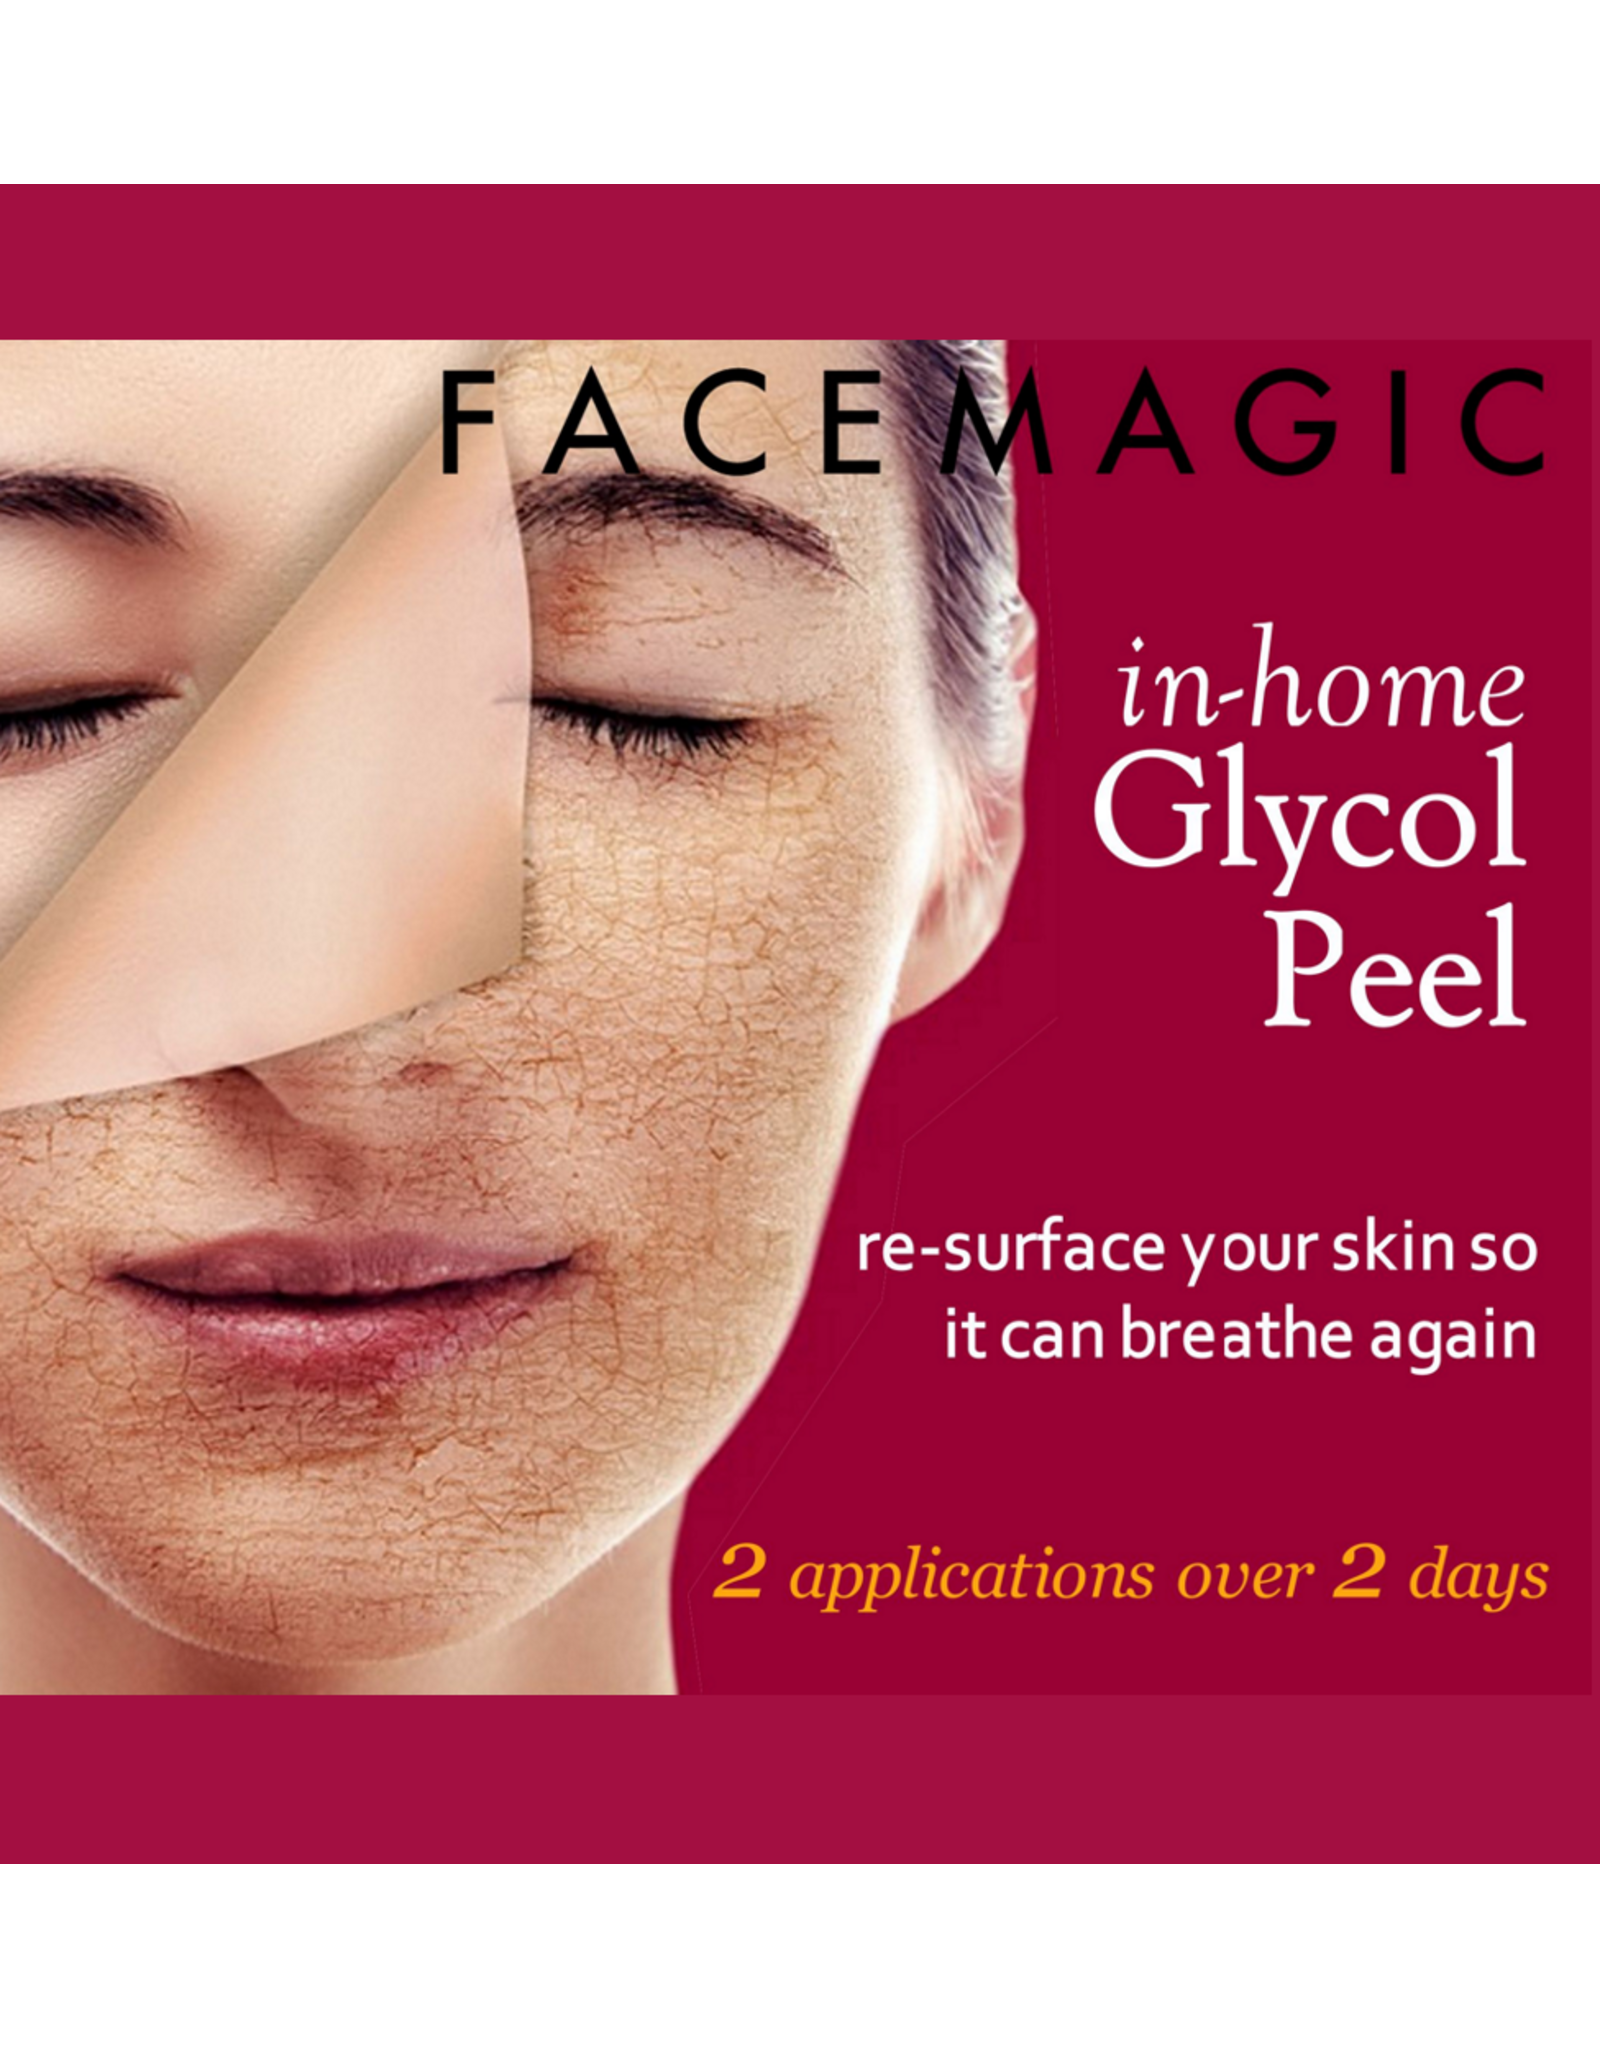 At Home Glycol Peel Kit